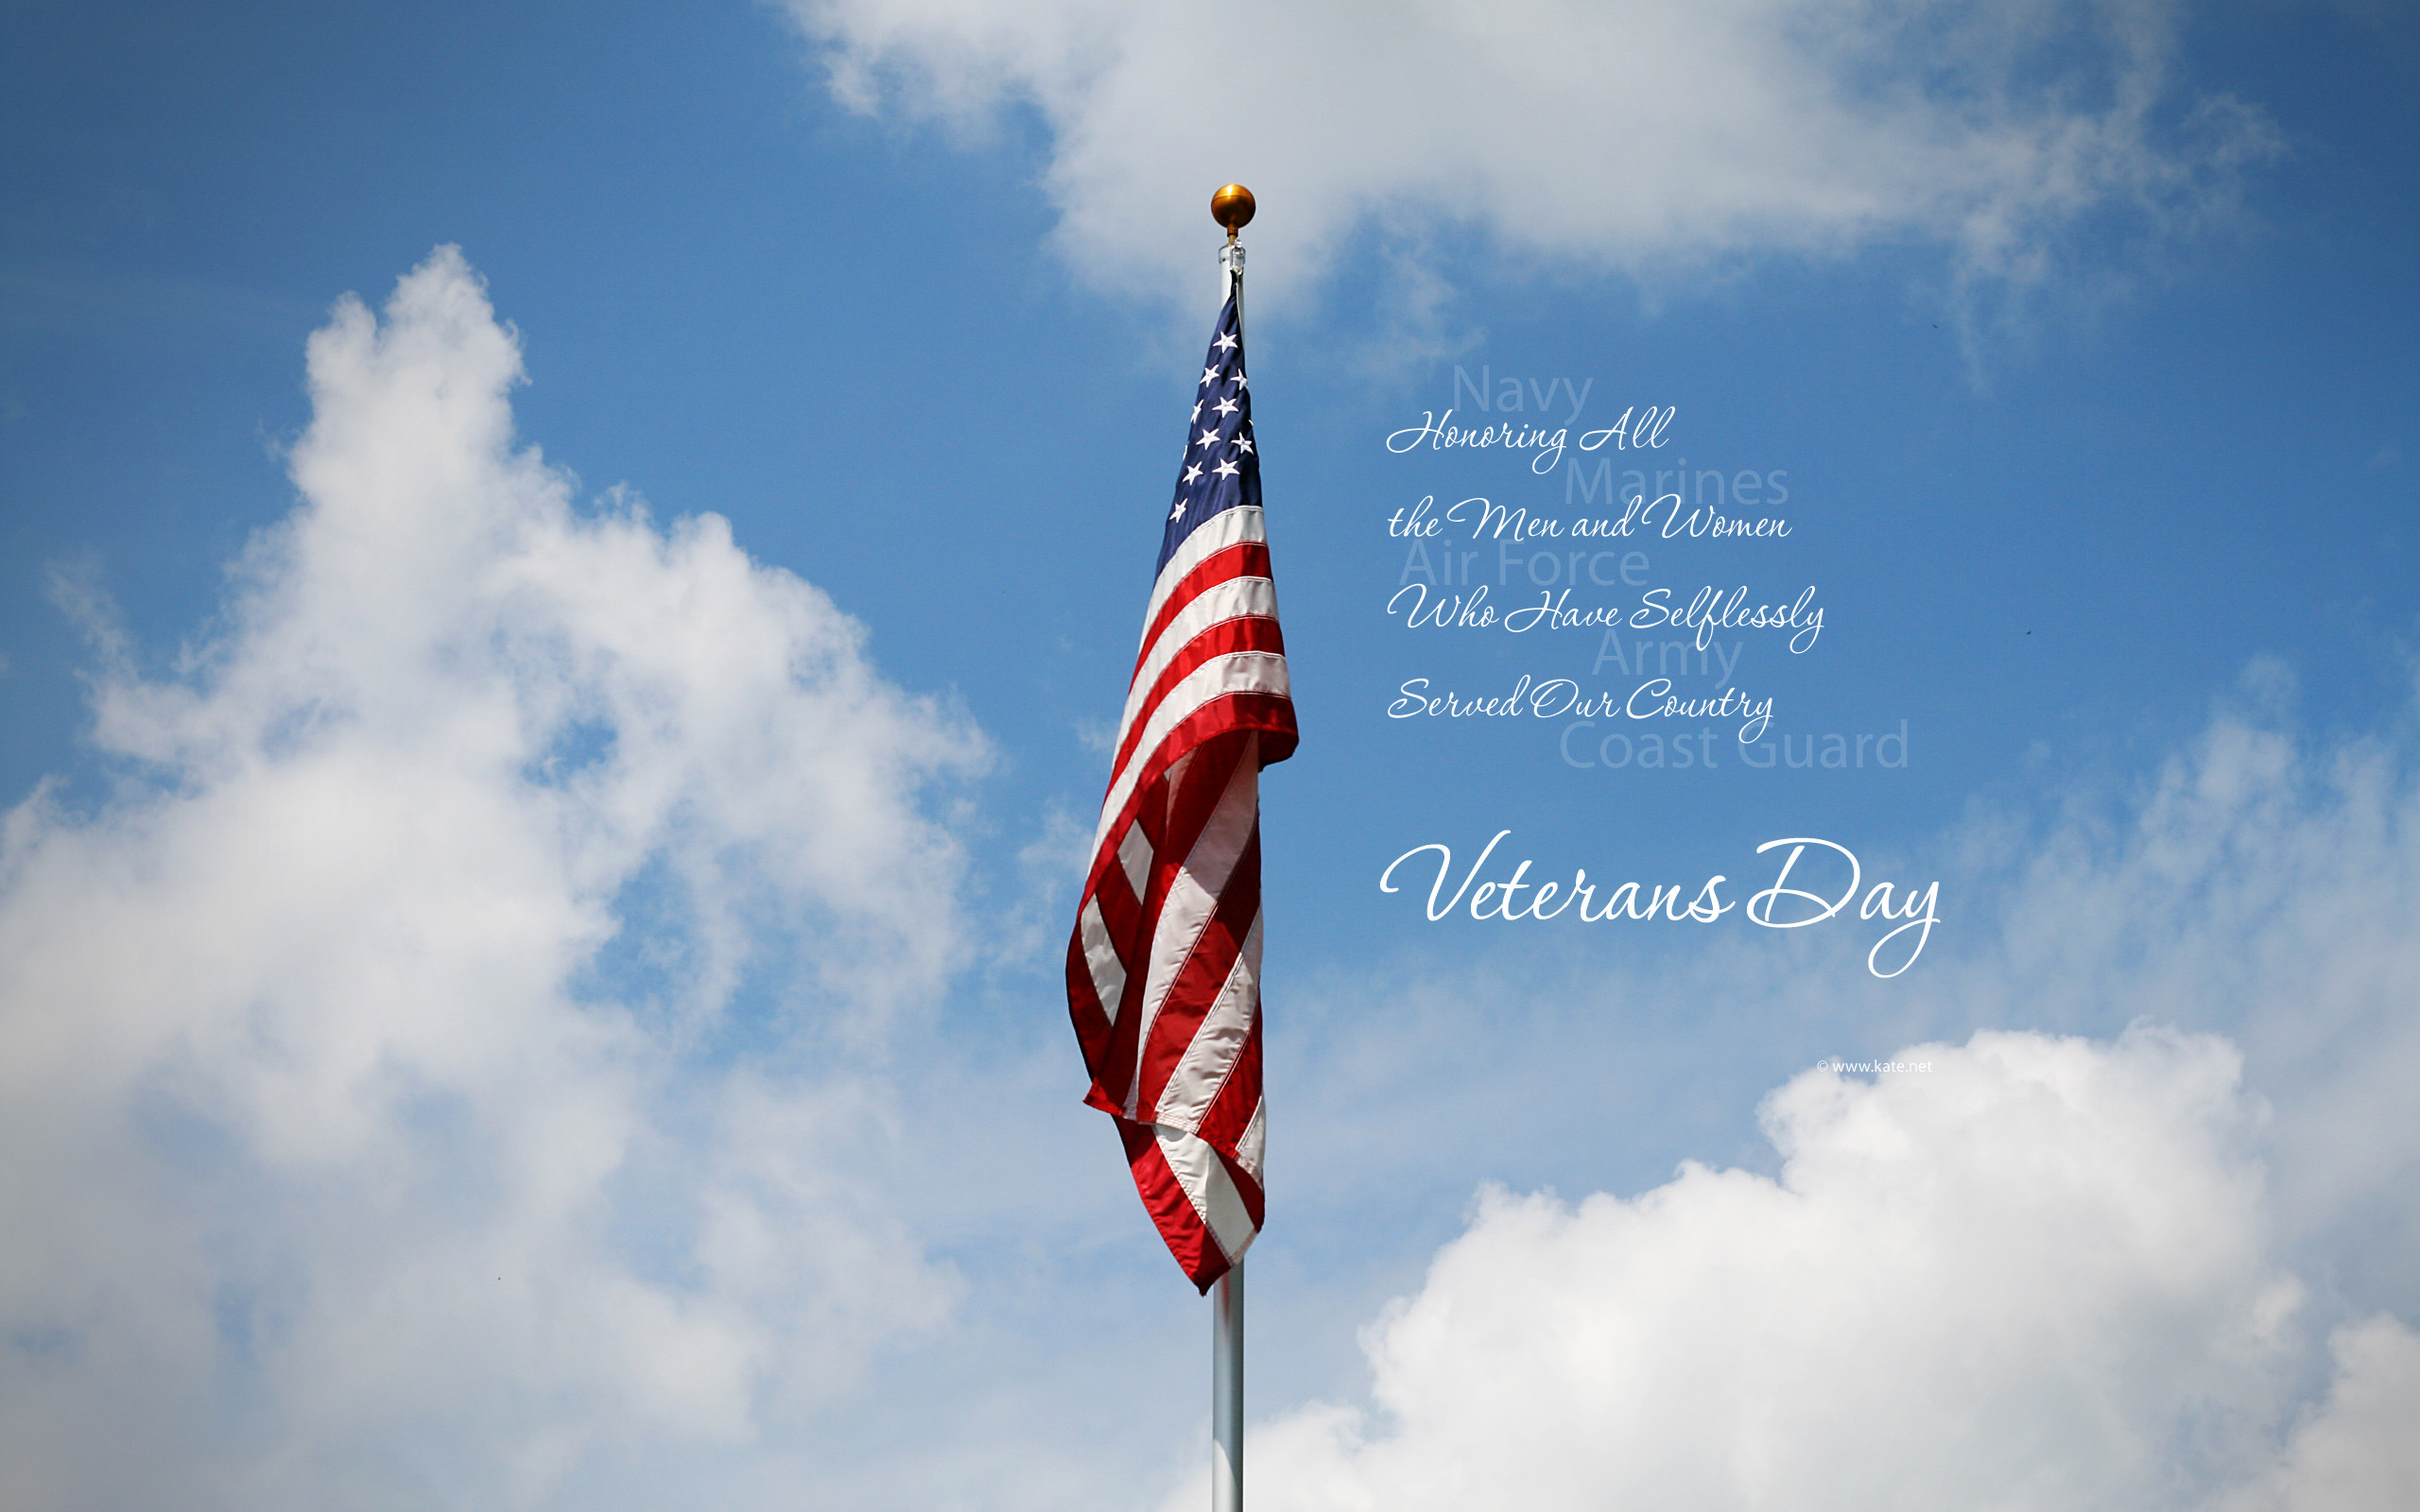 2560x1600 Veterans Day Wallpapers and Facebook Covers, Veterans Day History on  Kate.net